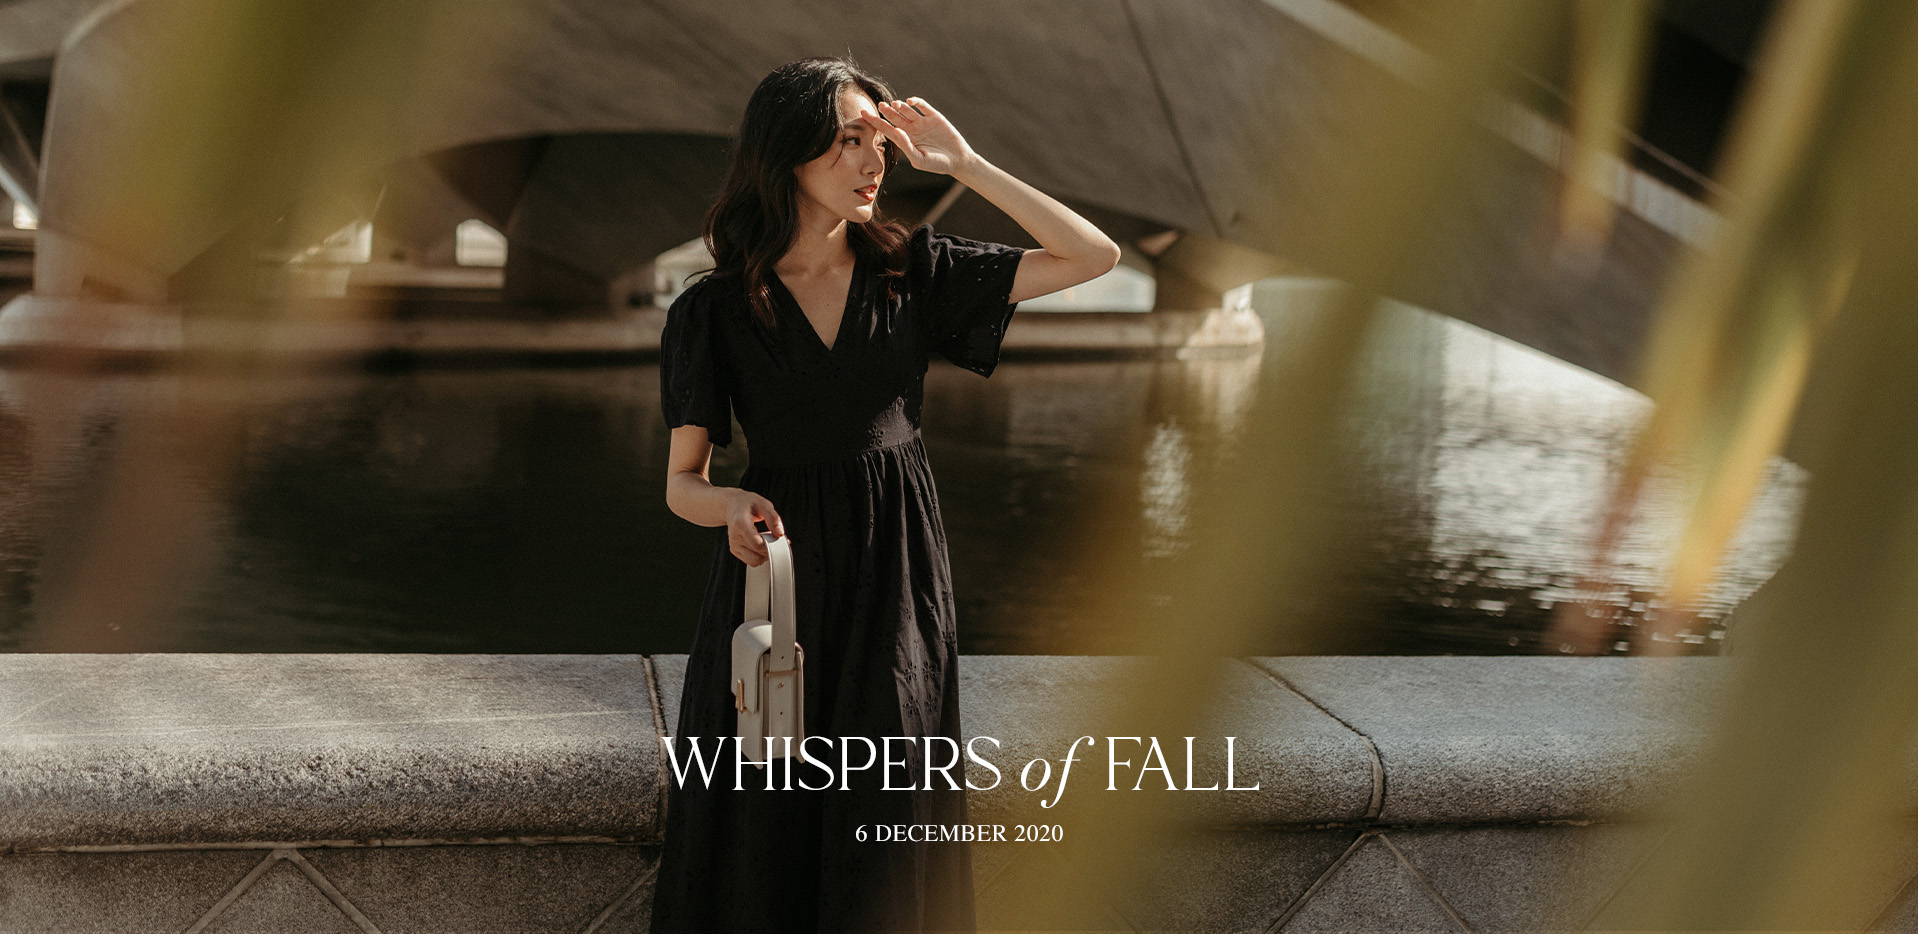 WHISPERS OF FALL